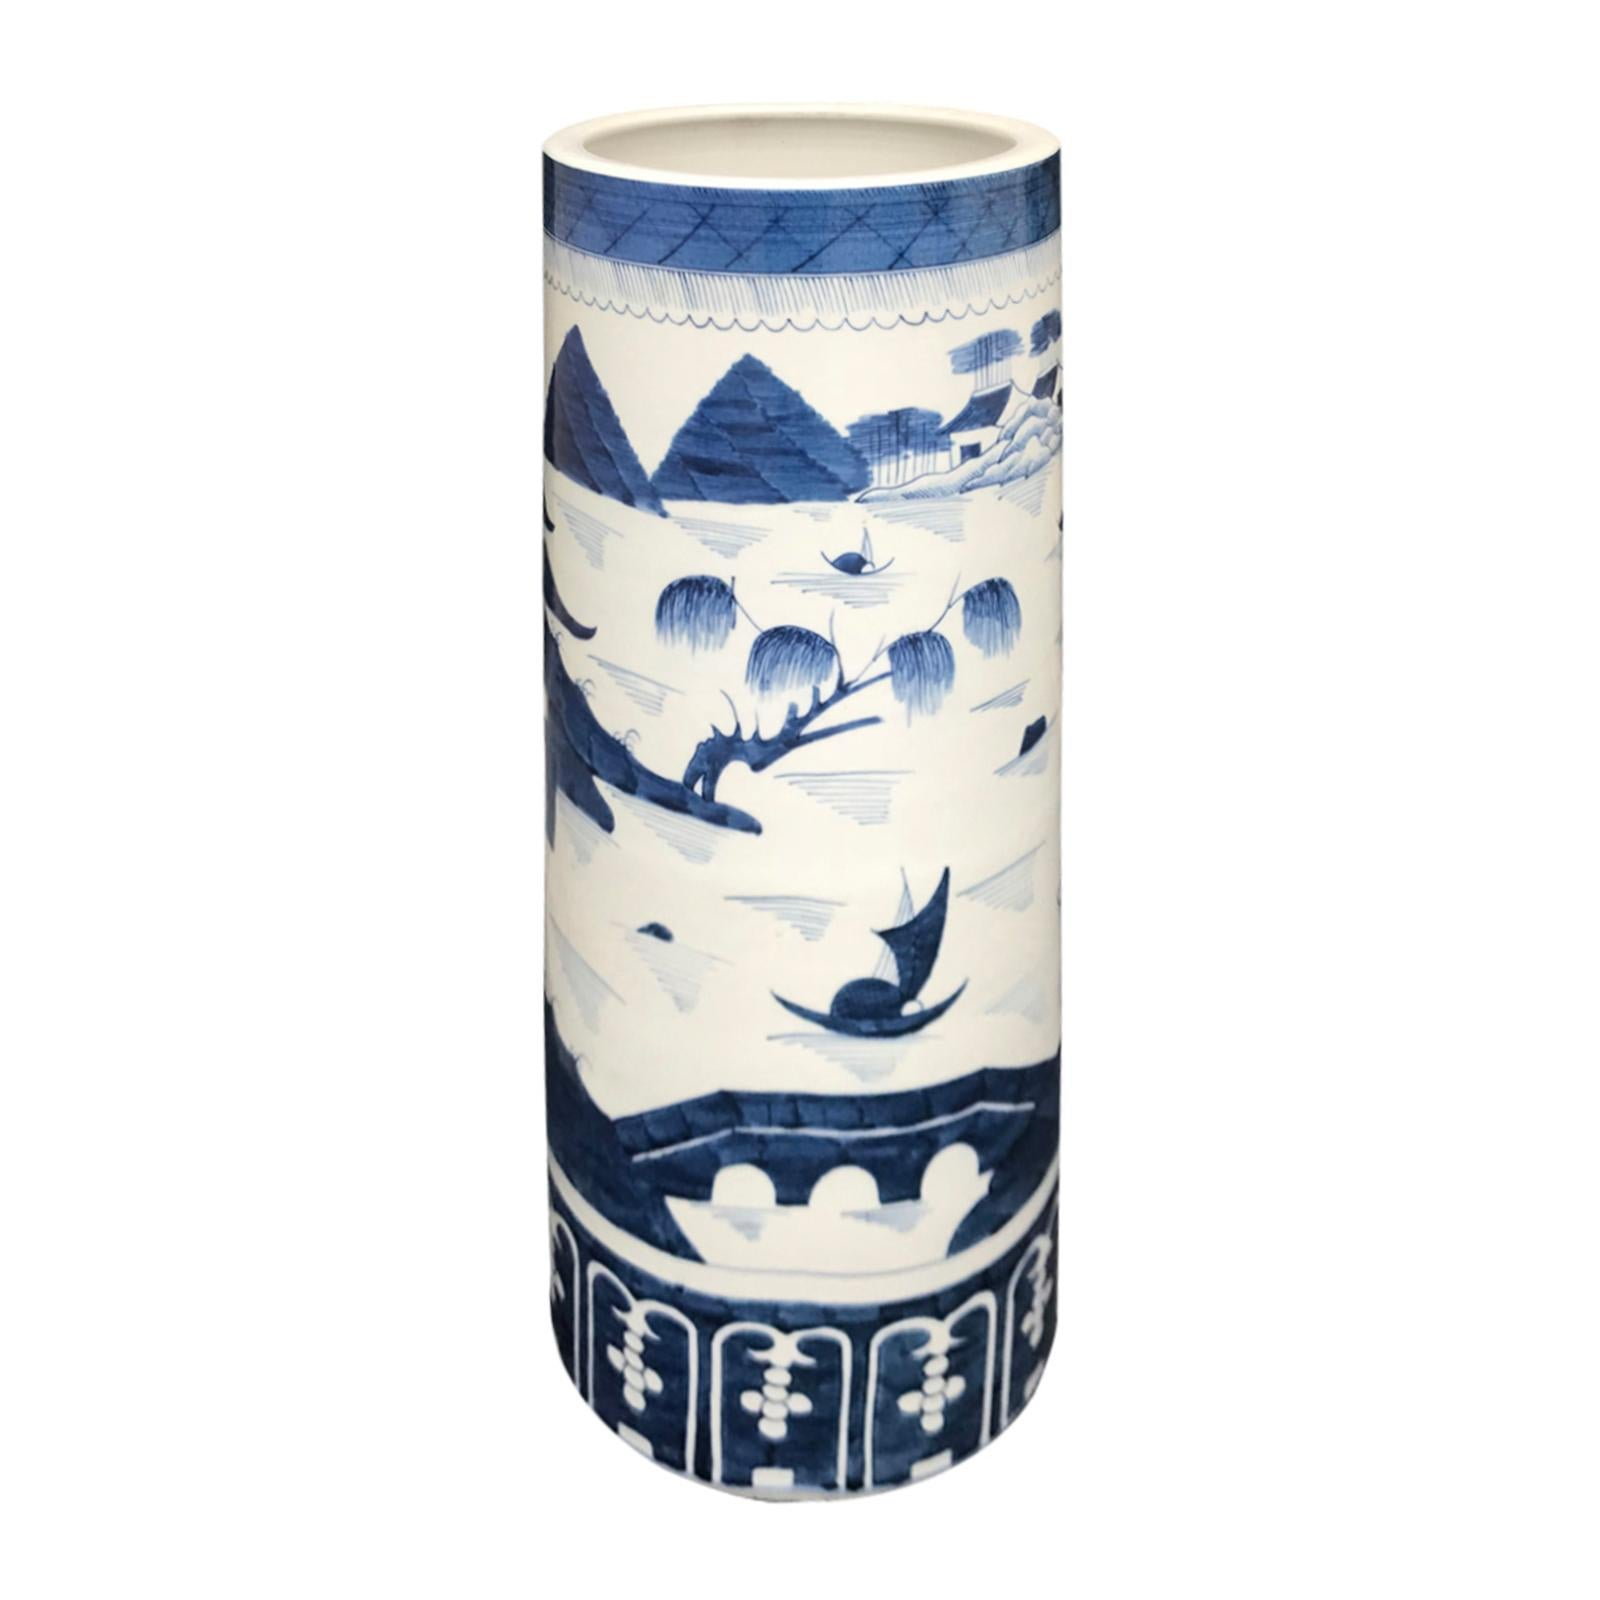 20th Century Canton Style Blue and White Porcelain Umbrella Stand